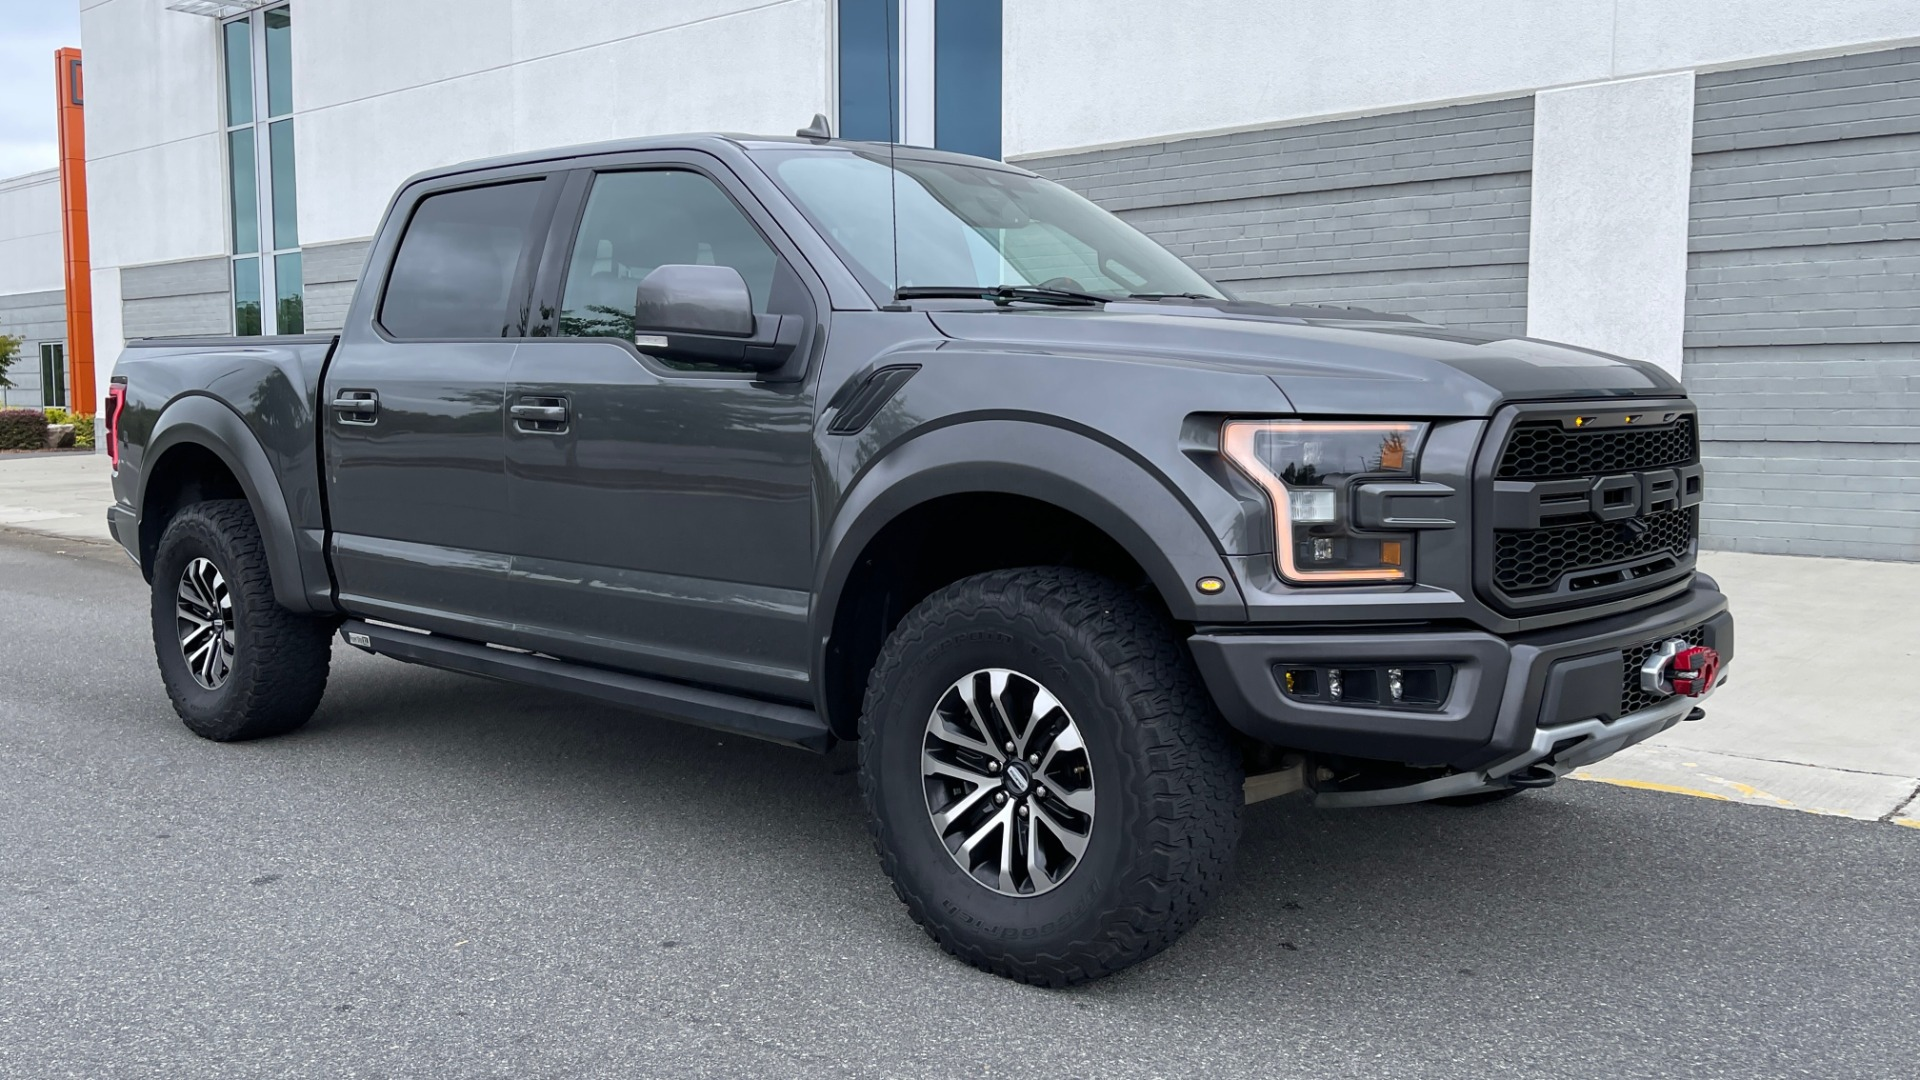 Used 2020 Ford F-150 RAPTOR 4X4 SUPERCREW / NAV / B&O SOUND / SUNROOF / REARVIEW for sale $74,900 at Formula Imports in Charlotte NC 28227 5